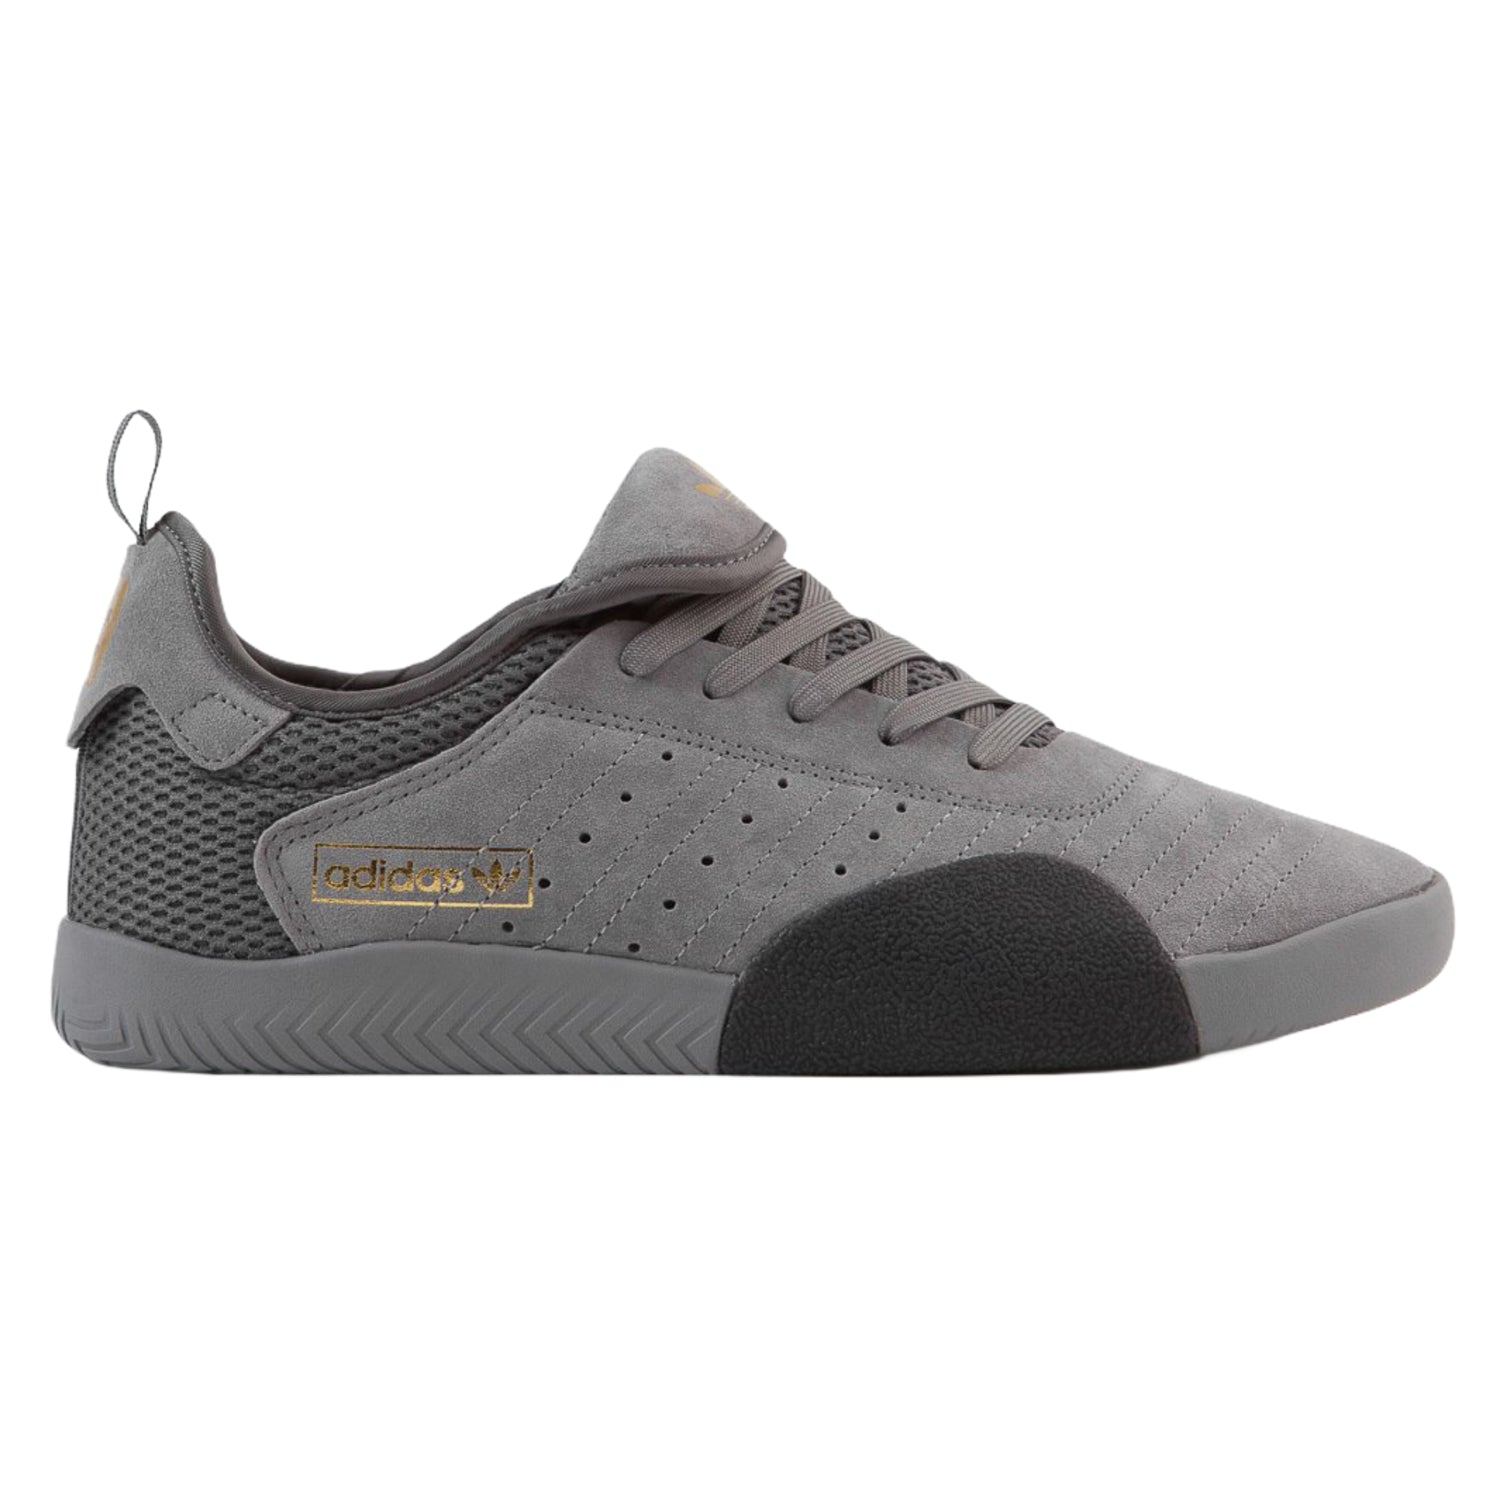 Adidas 3ST.003 Grey/Carbon